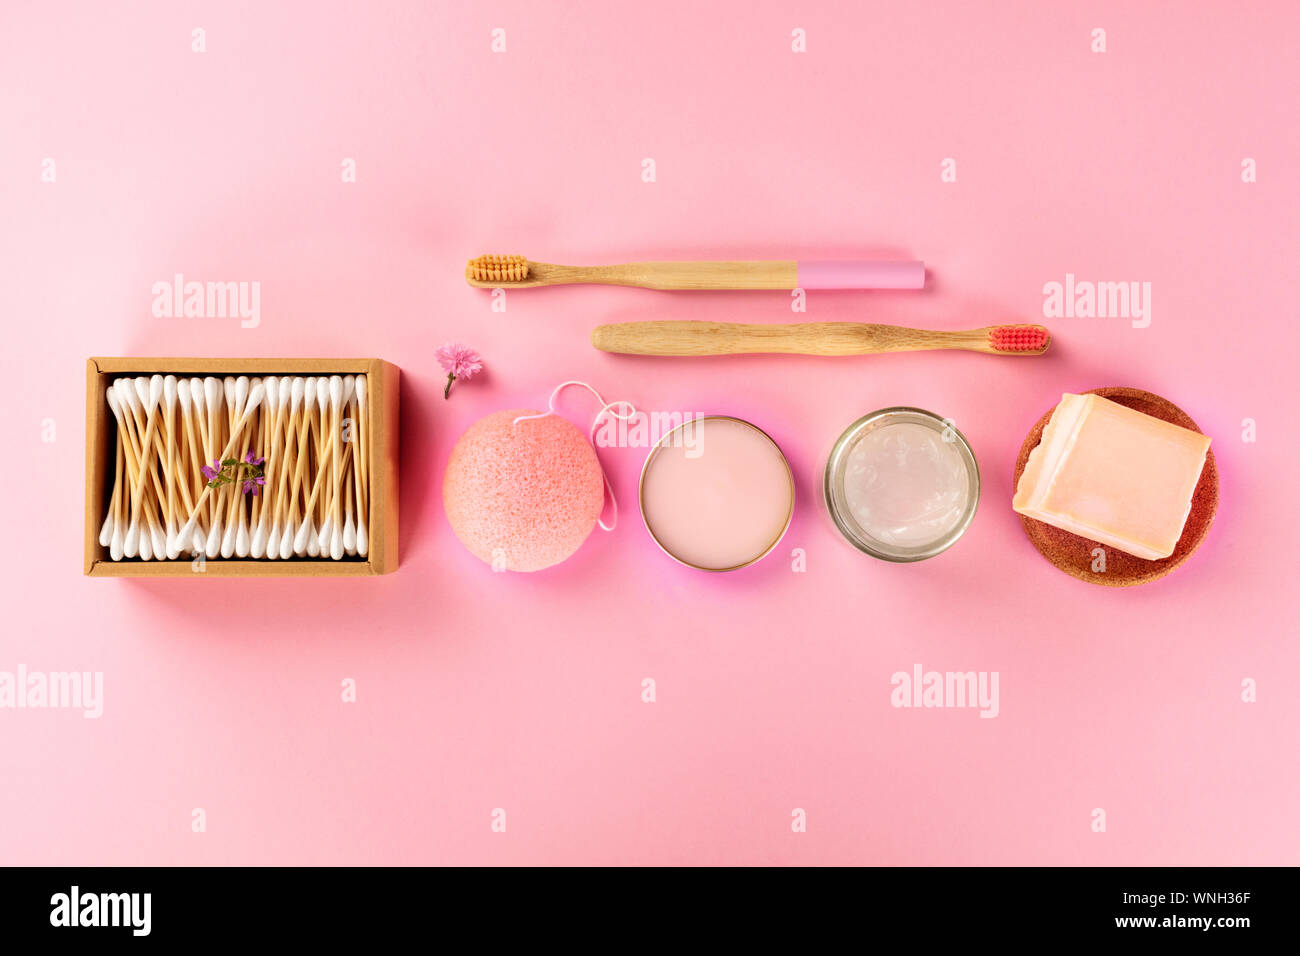 Plastic-free, zero waste cosmetics, flat lay on a pink background. Bamboo toothbrushes and cotton swabs, konjac sponge, natural organic products Stock Photo